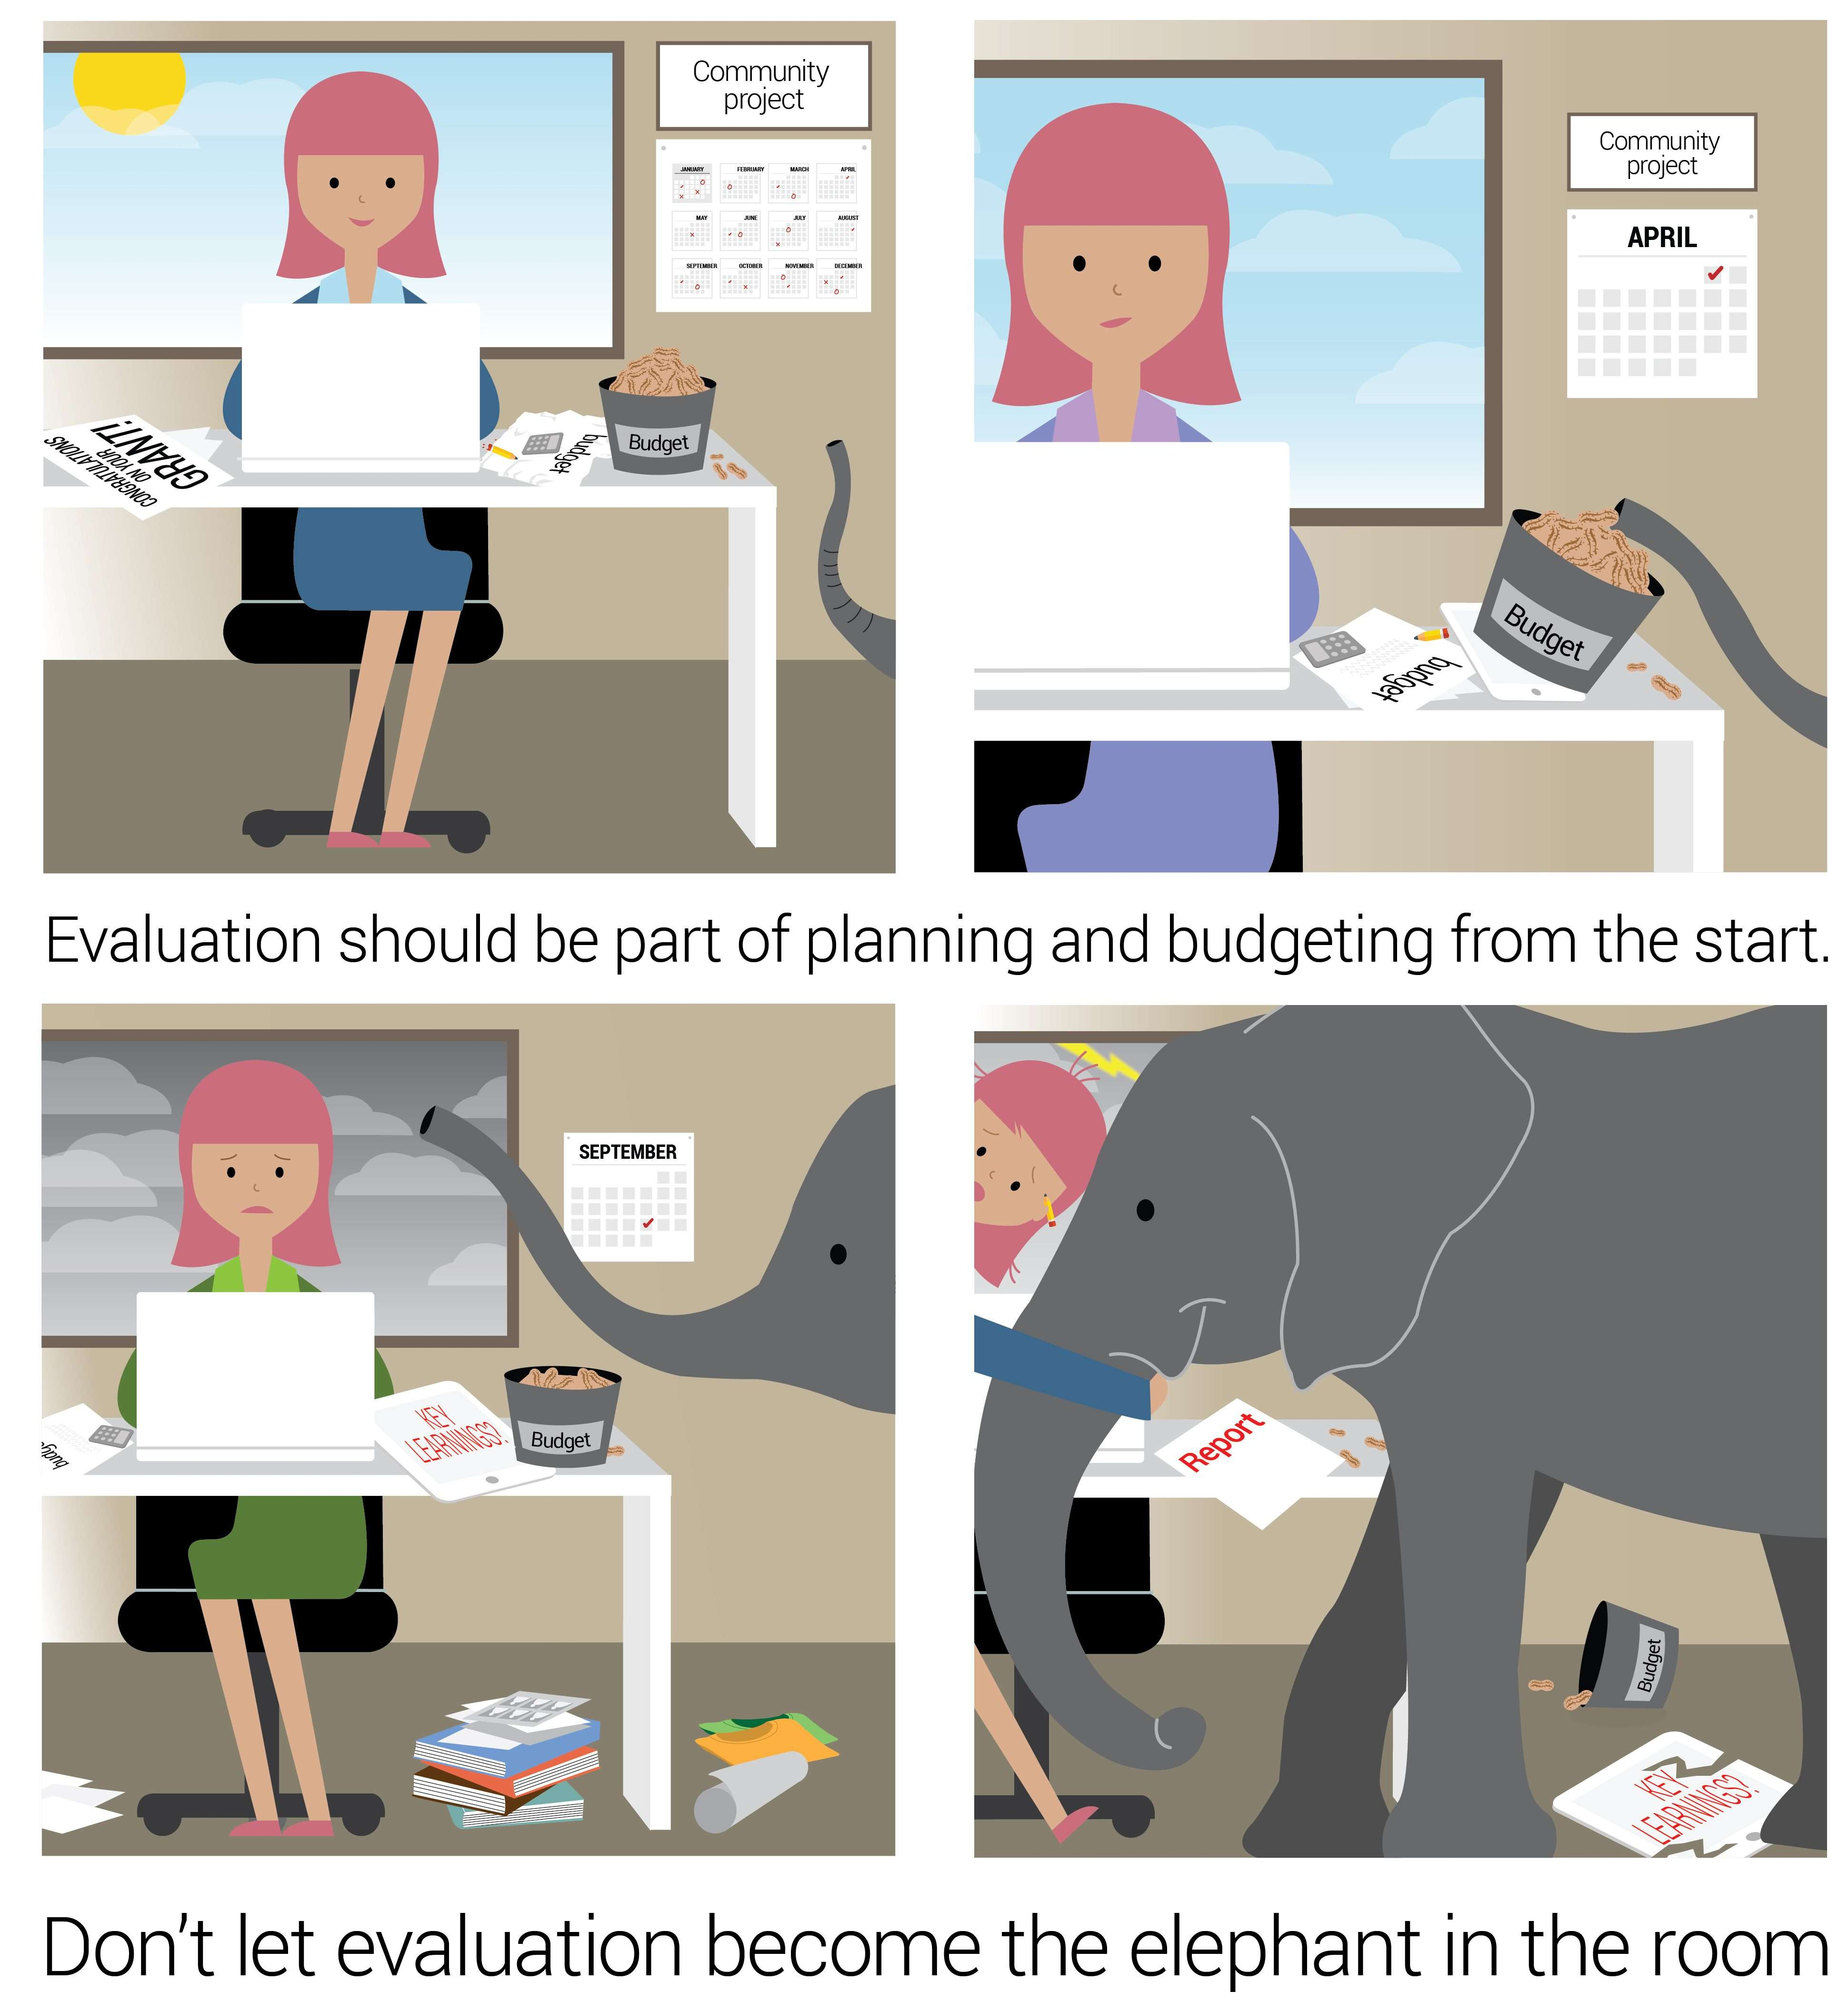 Don't let evaluation become the elephant in the room